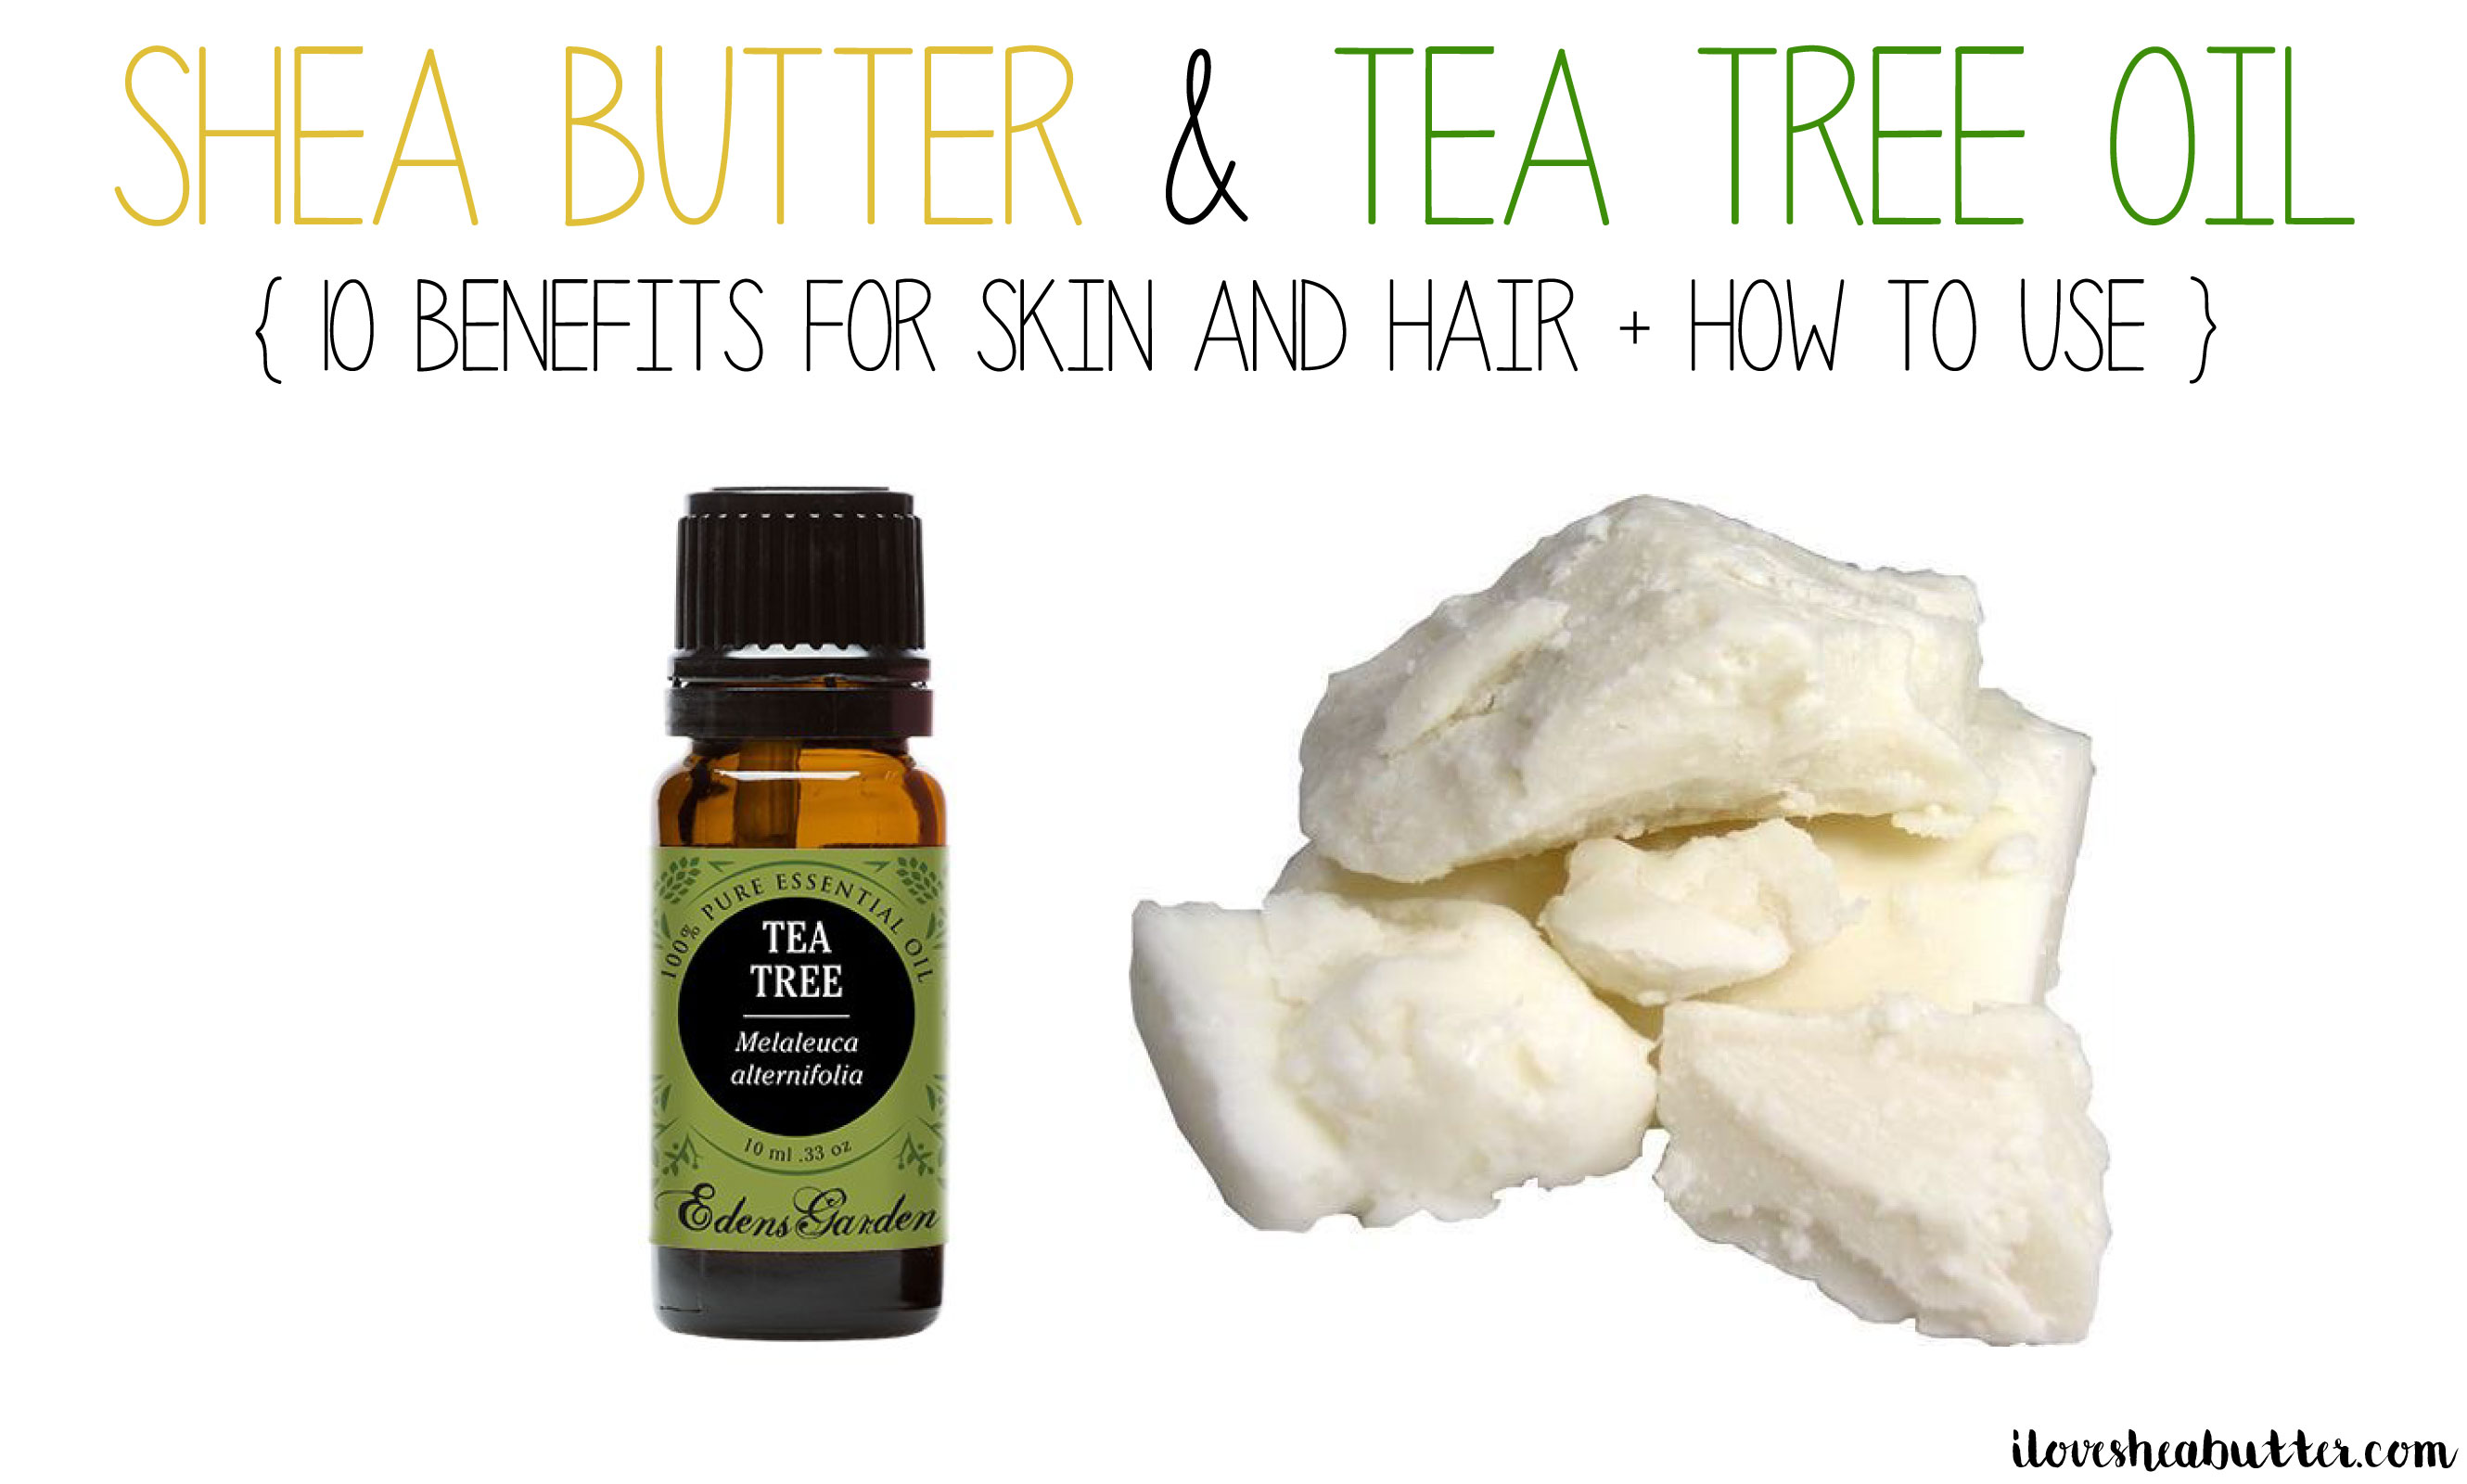 Benefits of Using Tea Tree Oil and Shea Butter Together